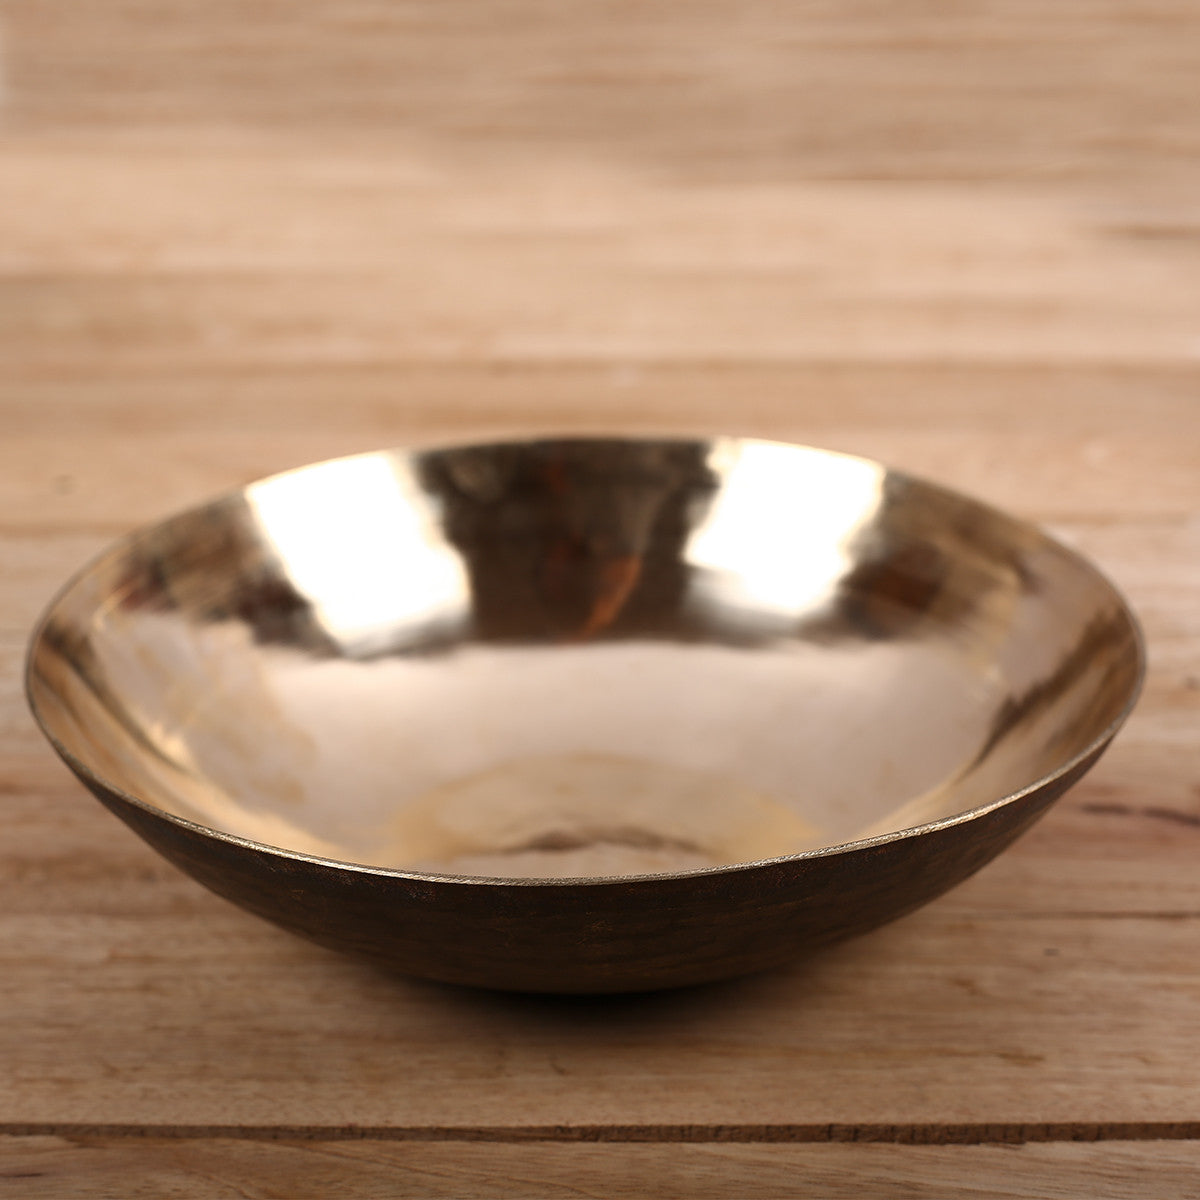 Serving Plate in Kansa Kaam - Bell Metal Utensil